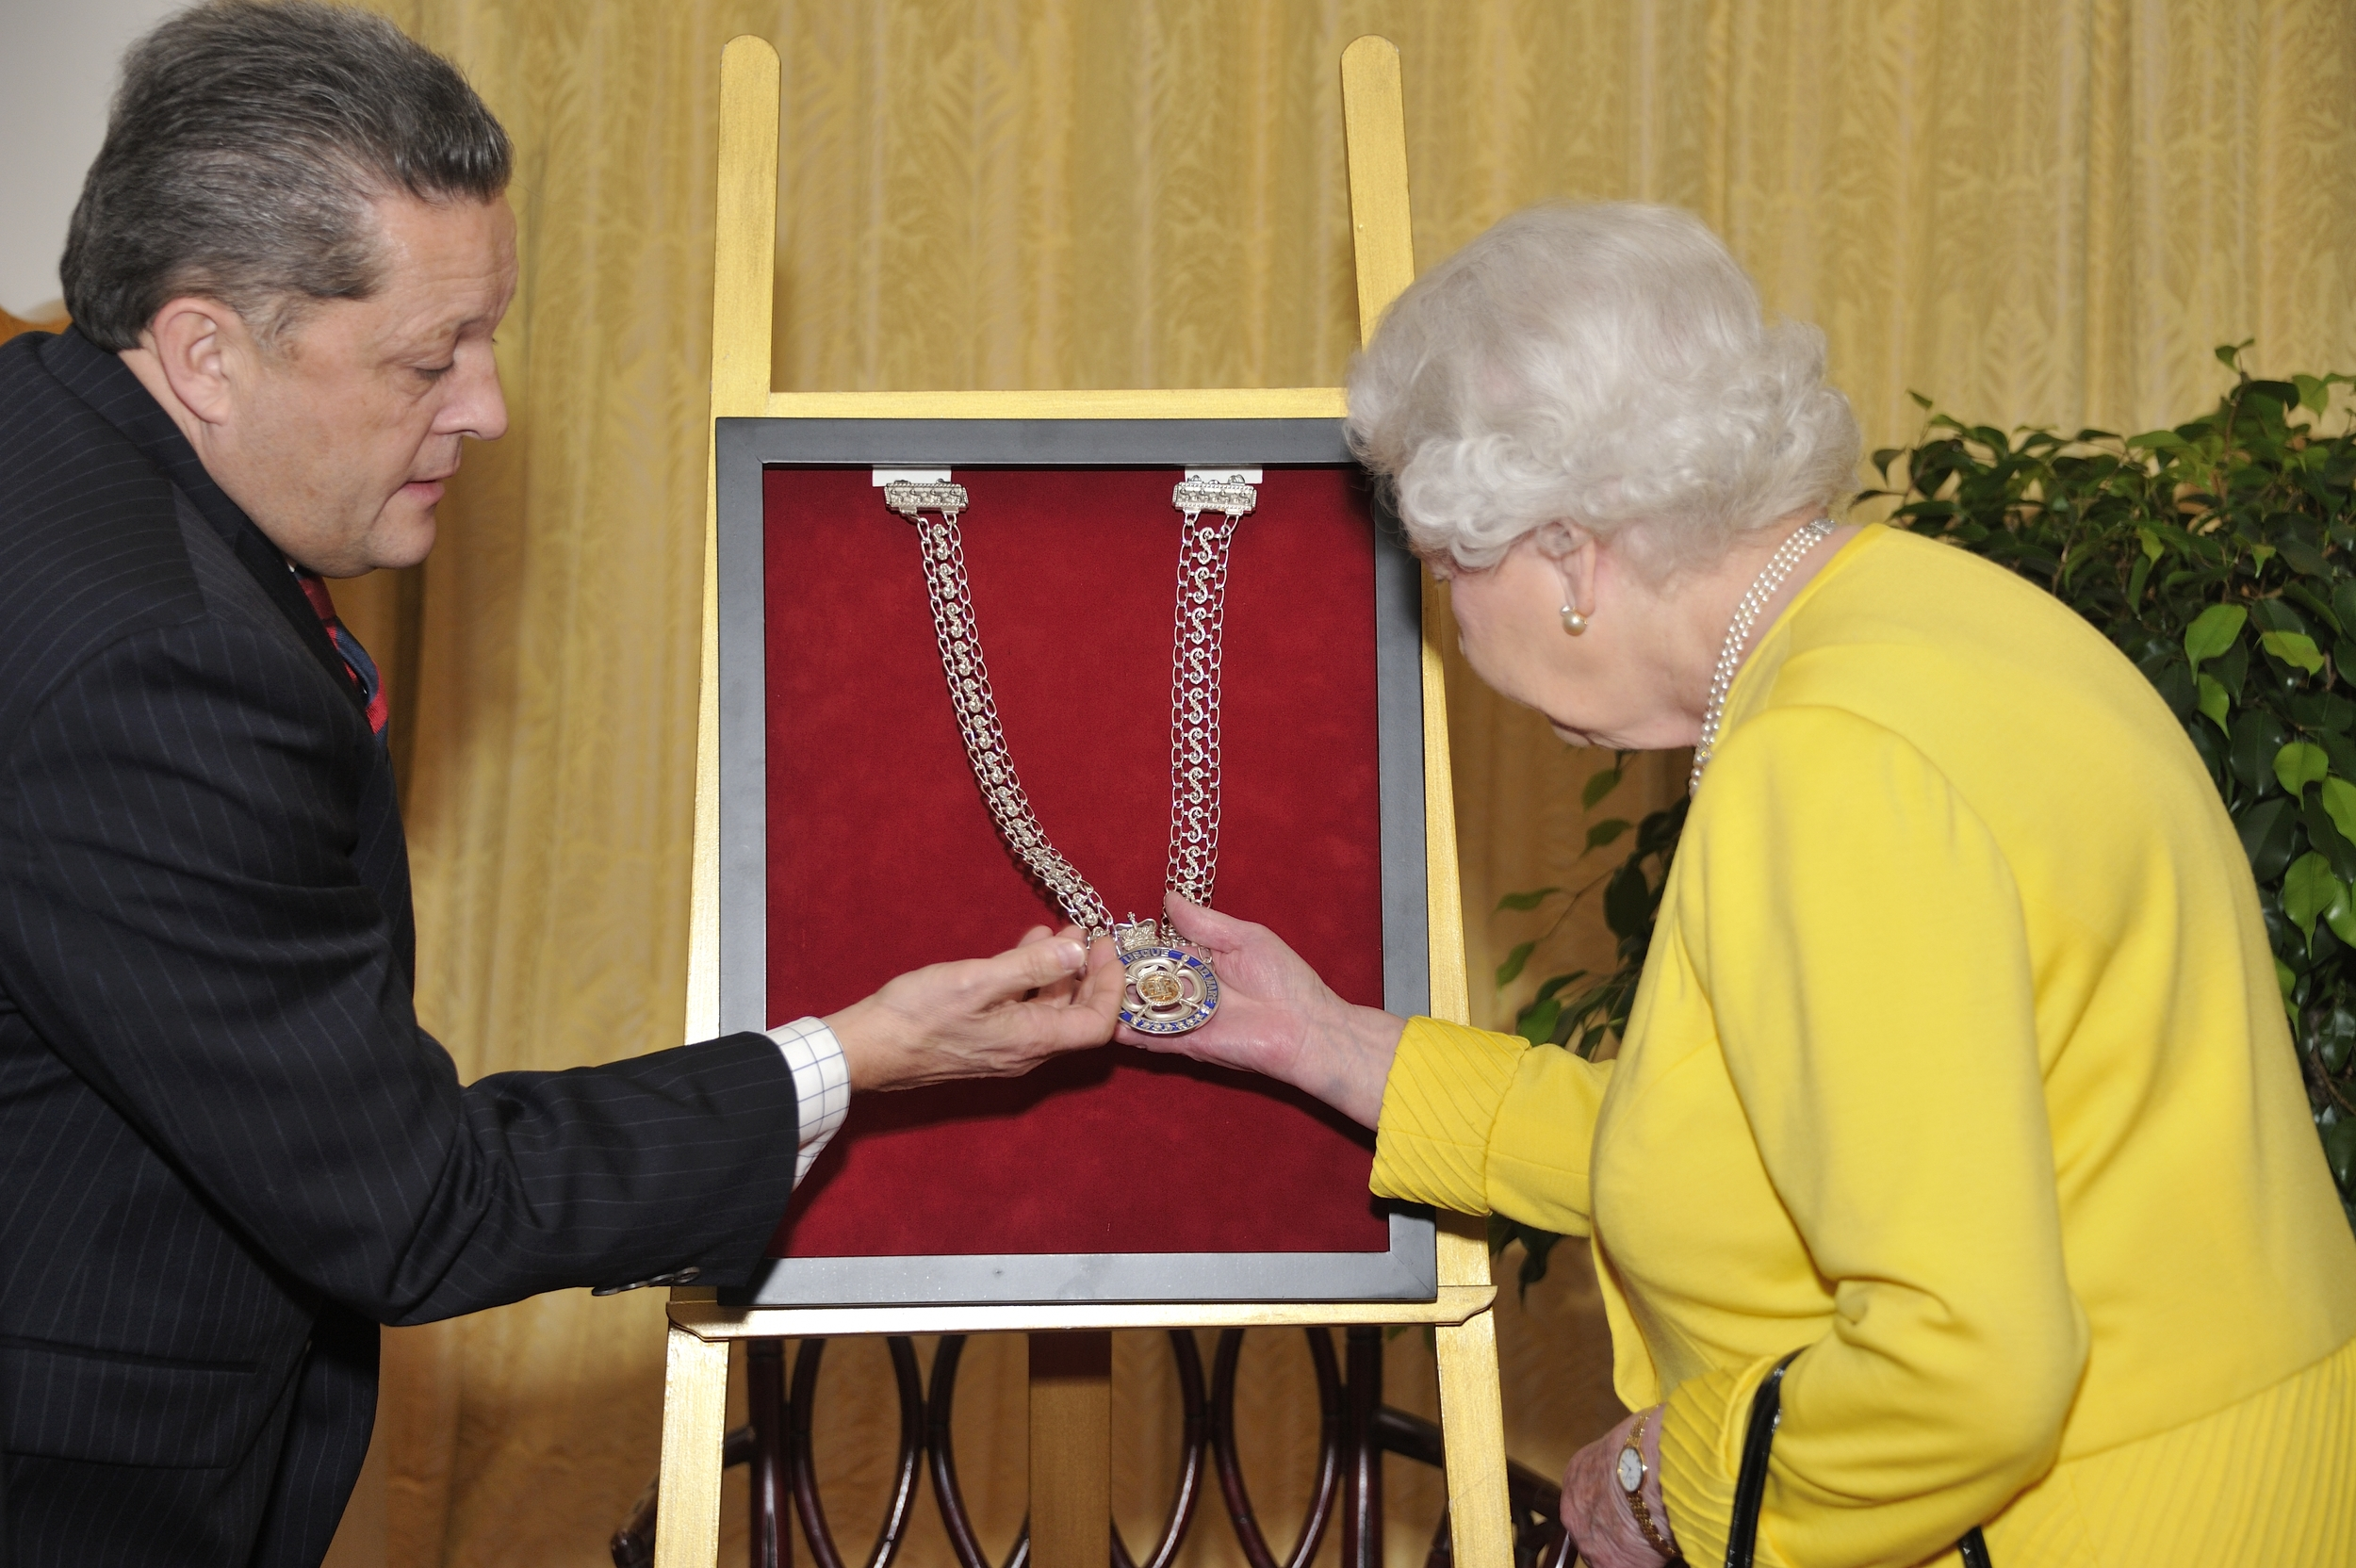 Queen Elizabeth II picking up the chain of office